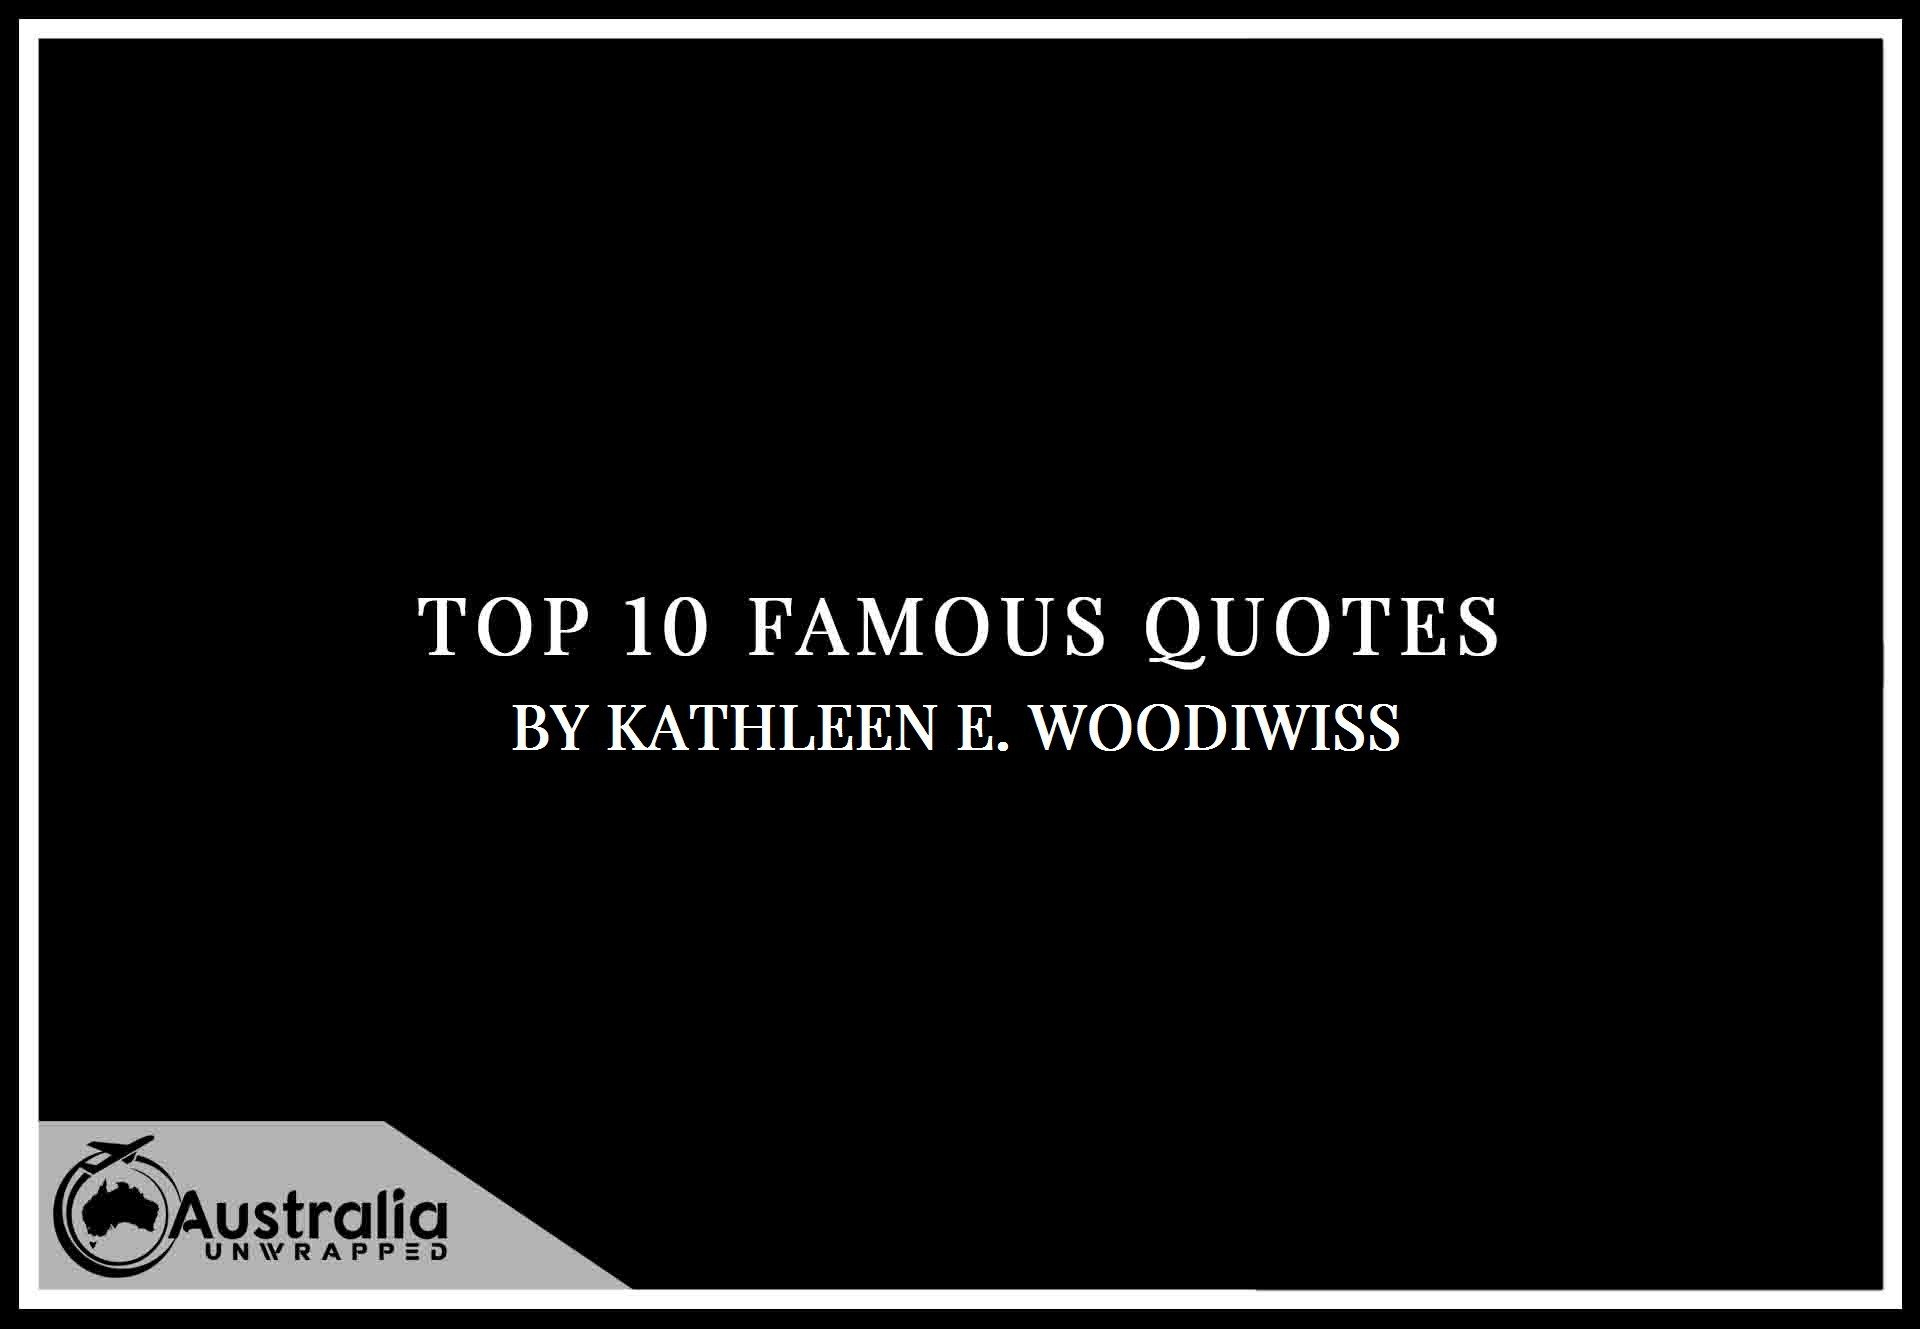 Kathleen E. Woodiwiss's Top 10 Popular and Famous Quotes